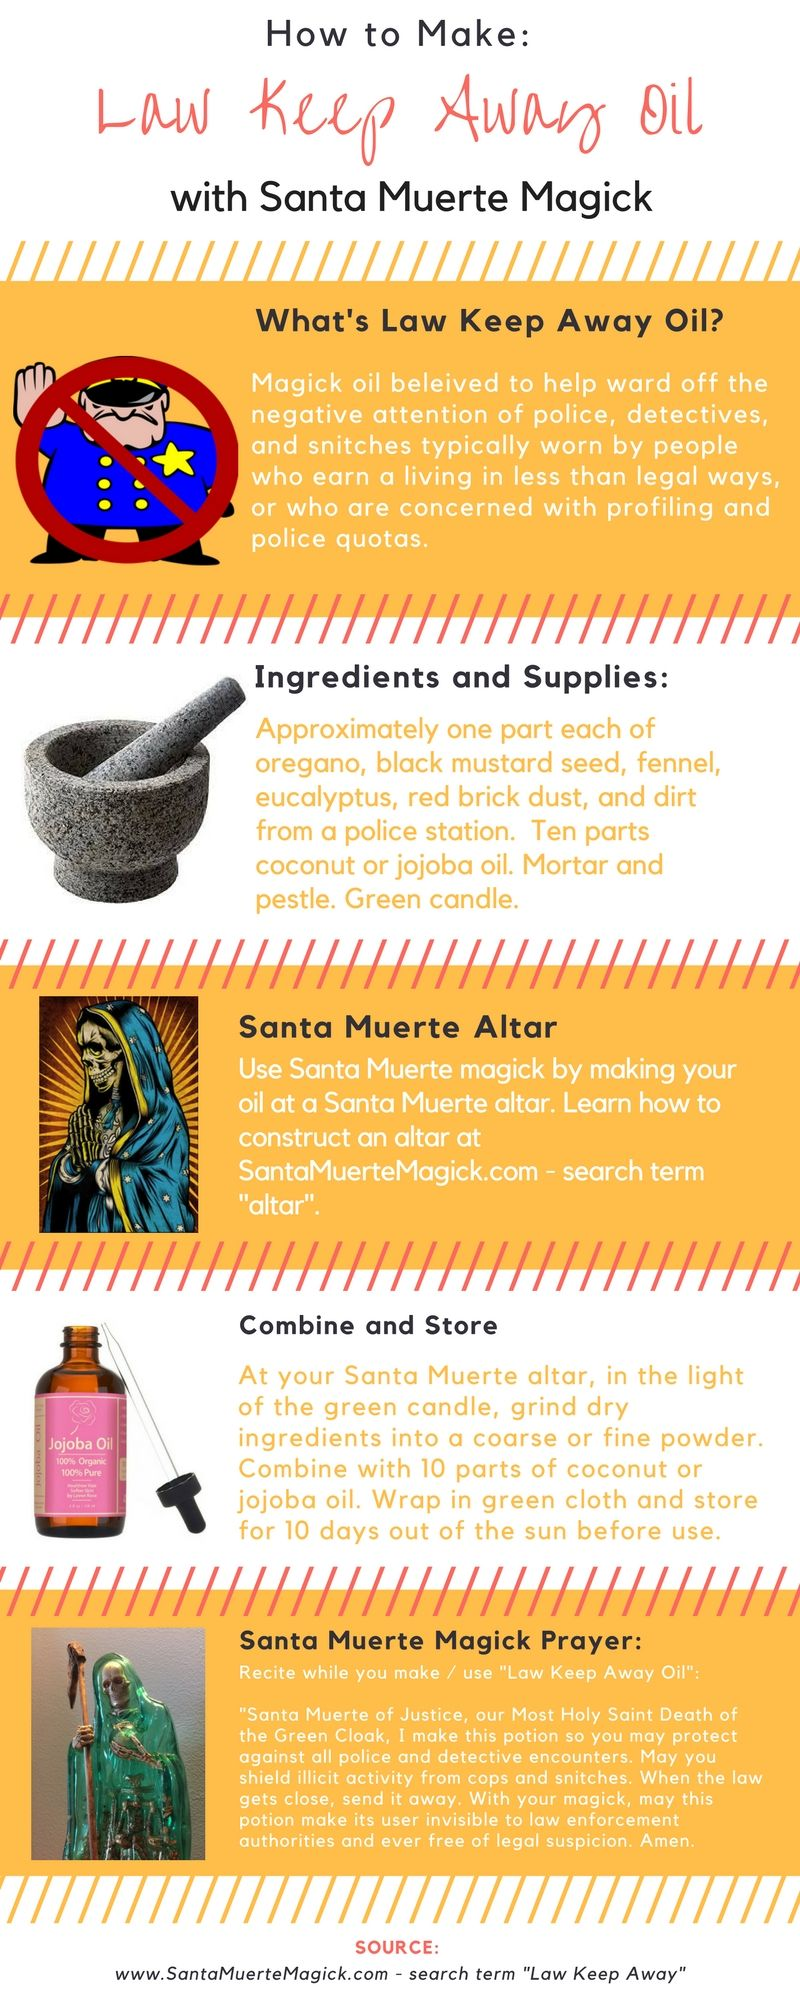 How to Make Law Keep Away Oil with Santa Muerte Magick